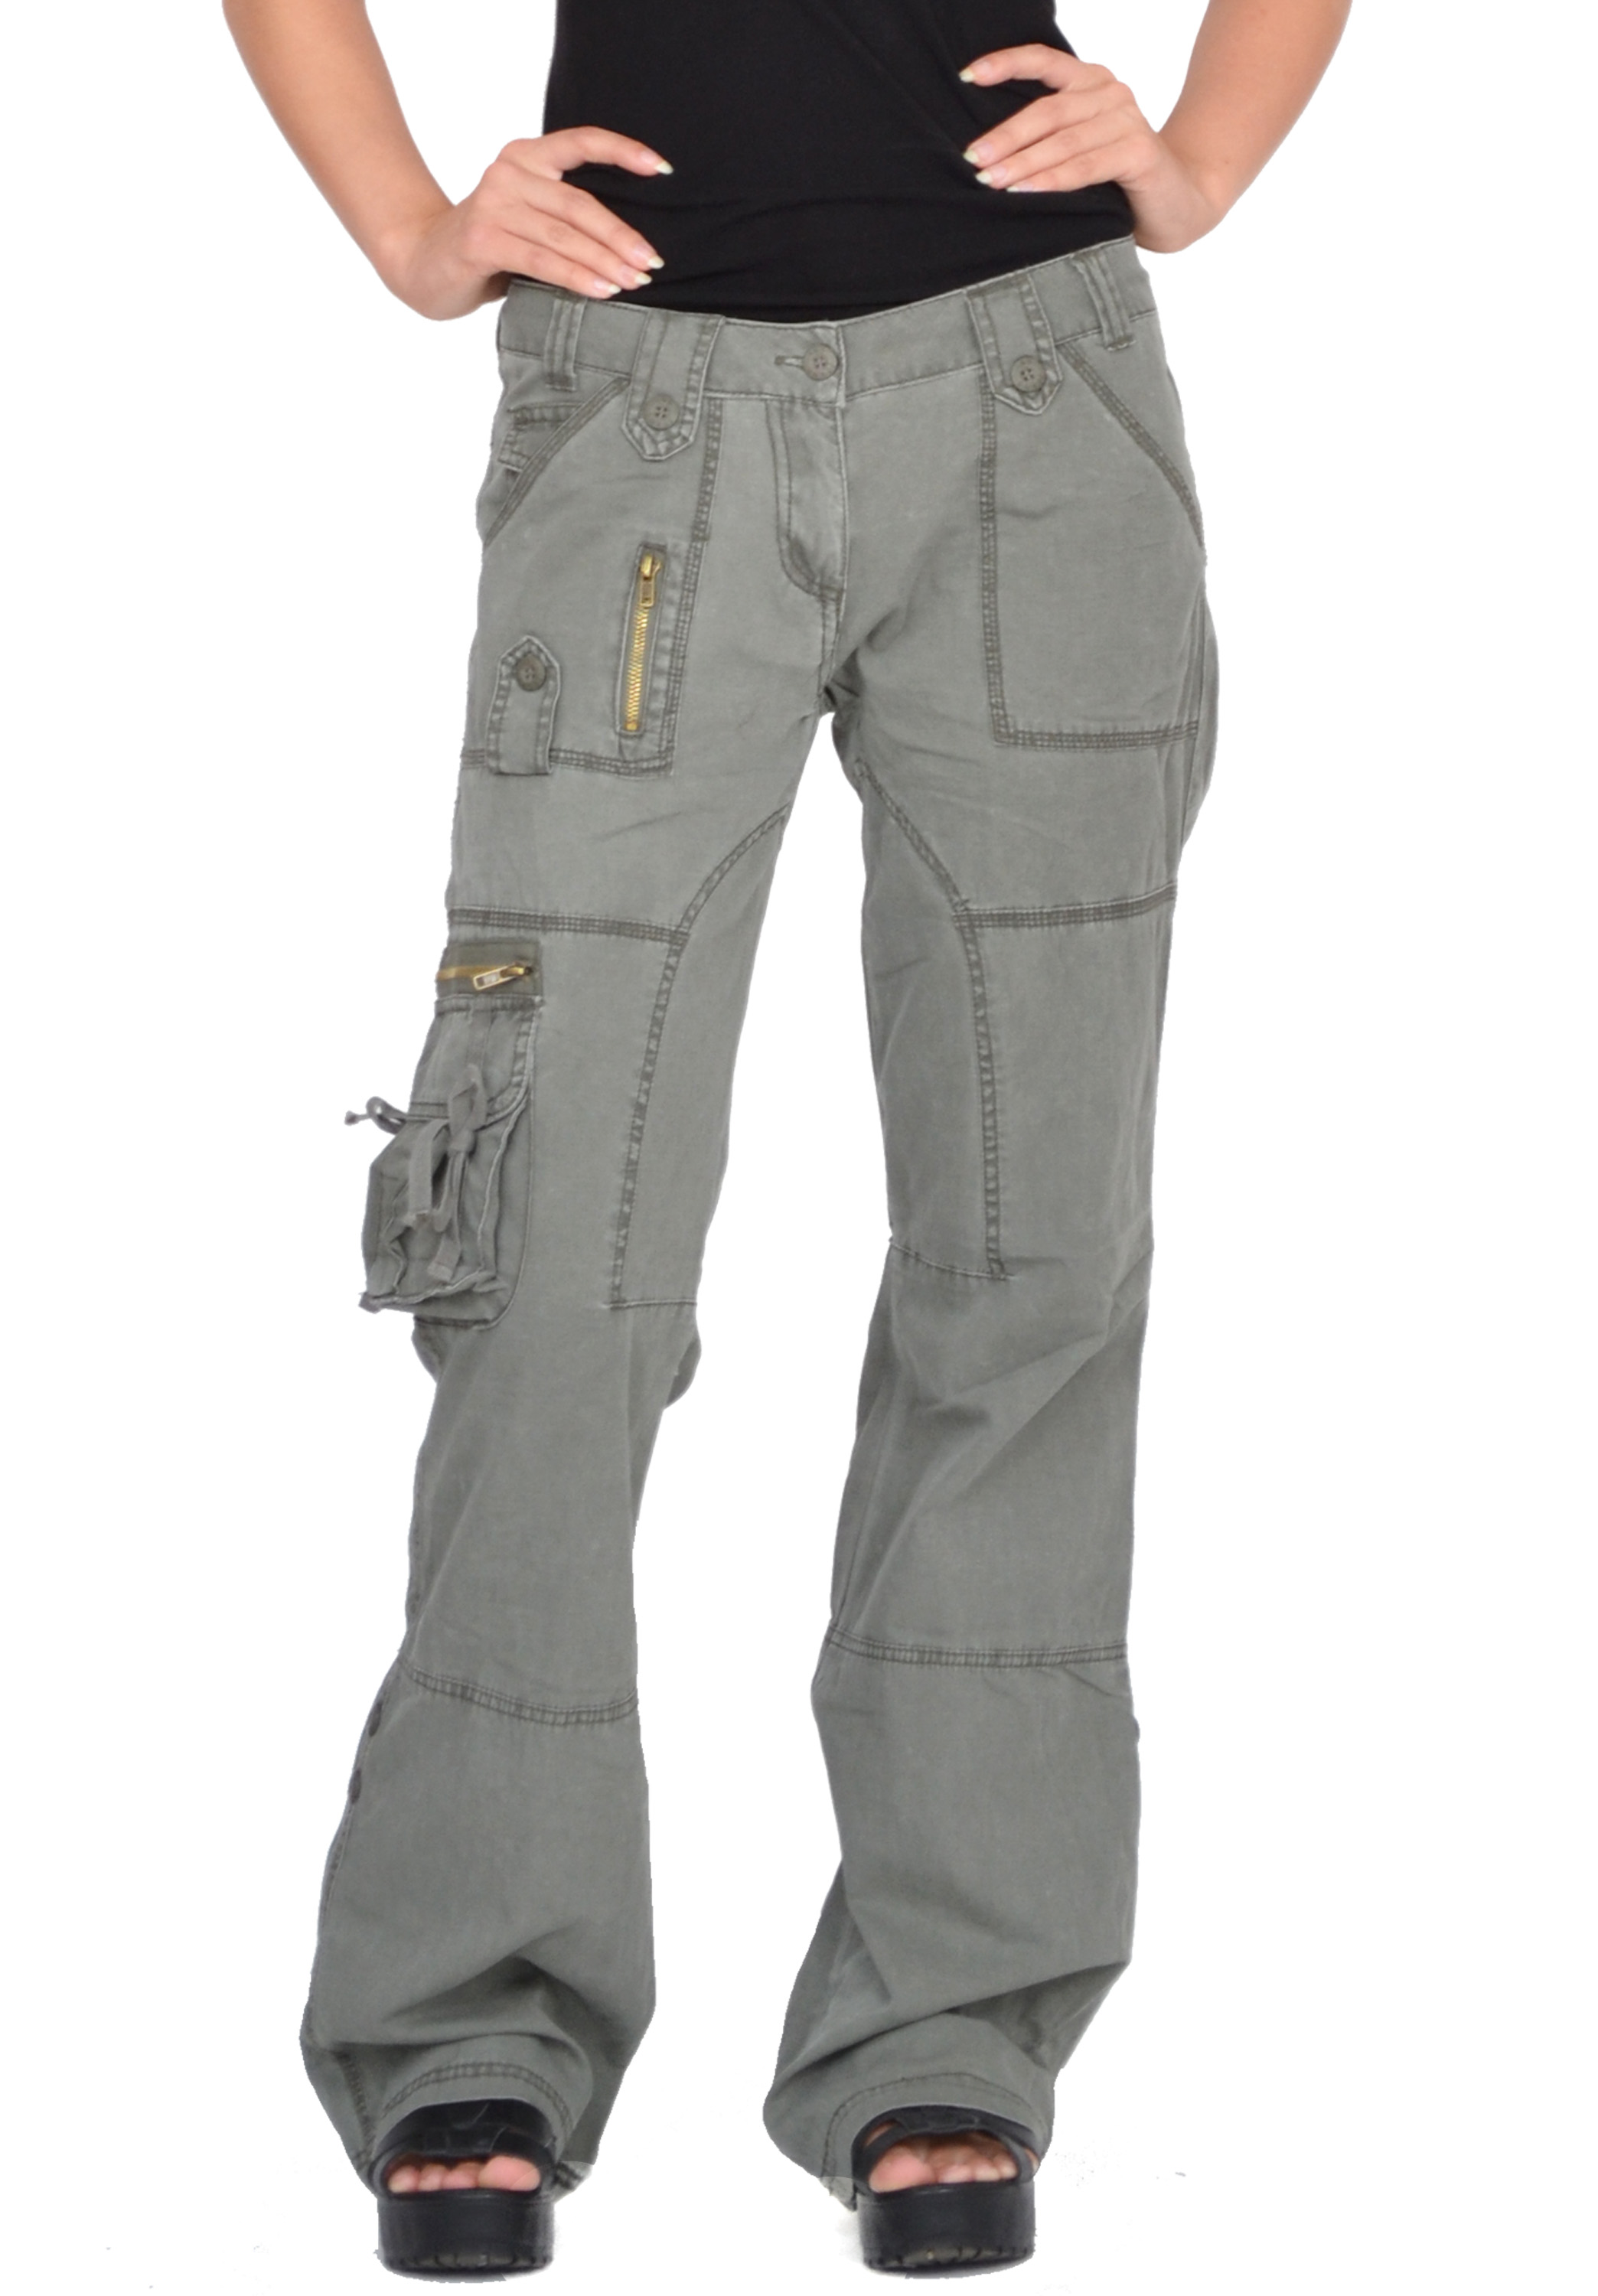 Find great deals on eBay for cargo pants khaki. Shop with confidence.